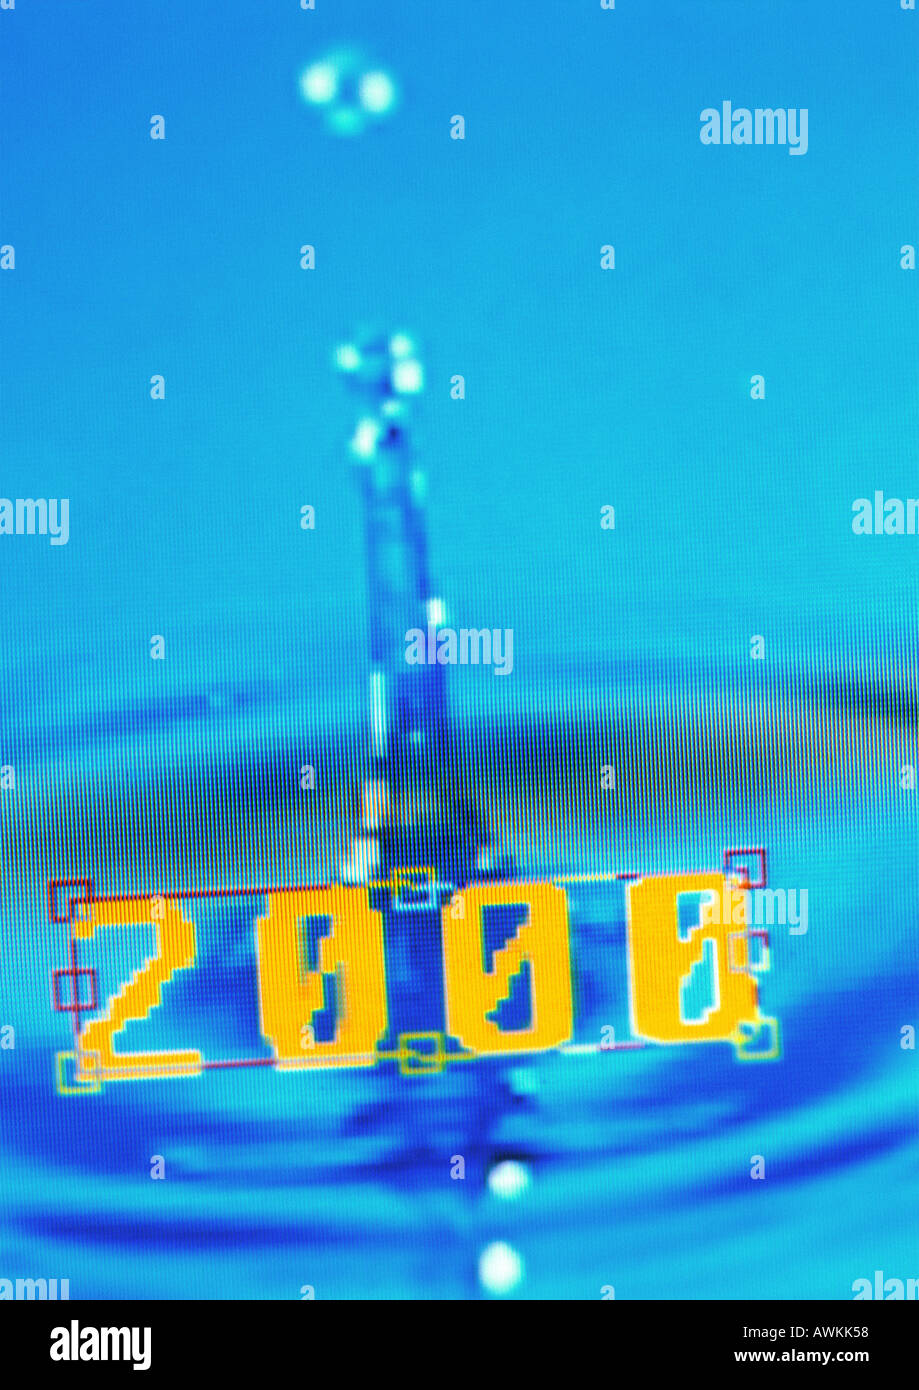 2000, text and drop falling into water - Stock Image